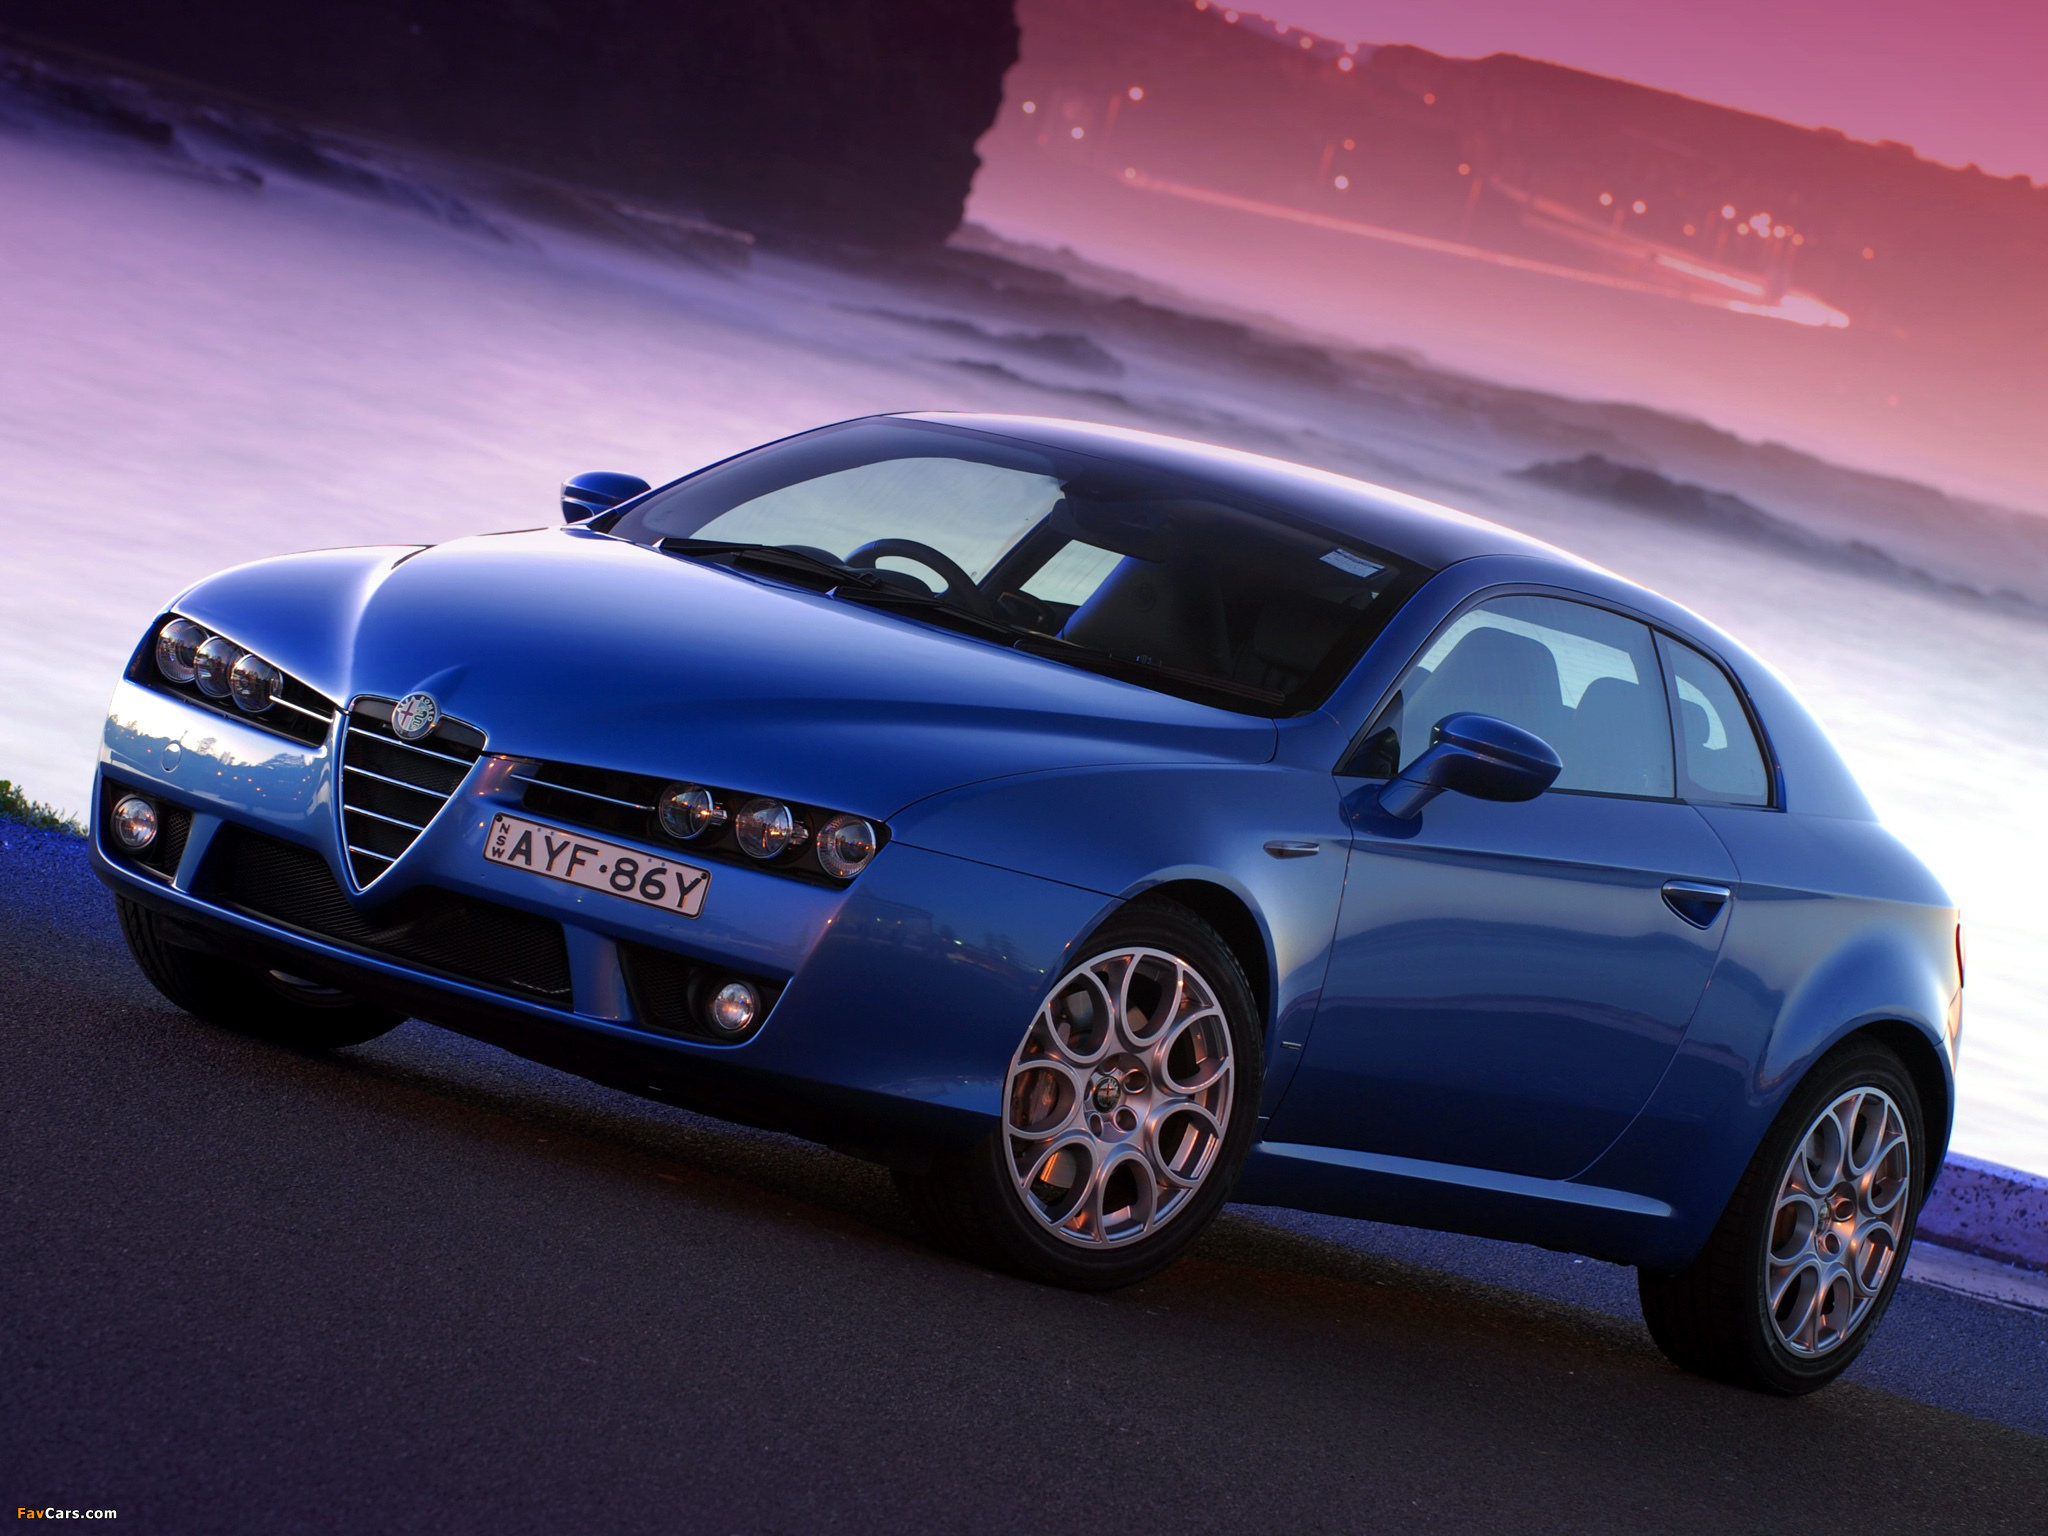 Alfa Romeo Brera 2010 photo - 2